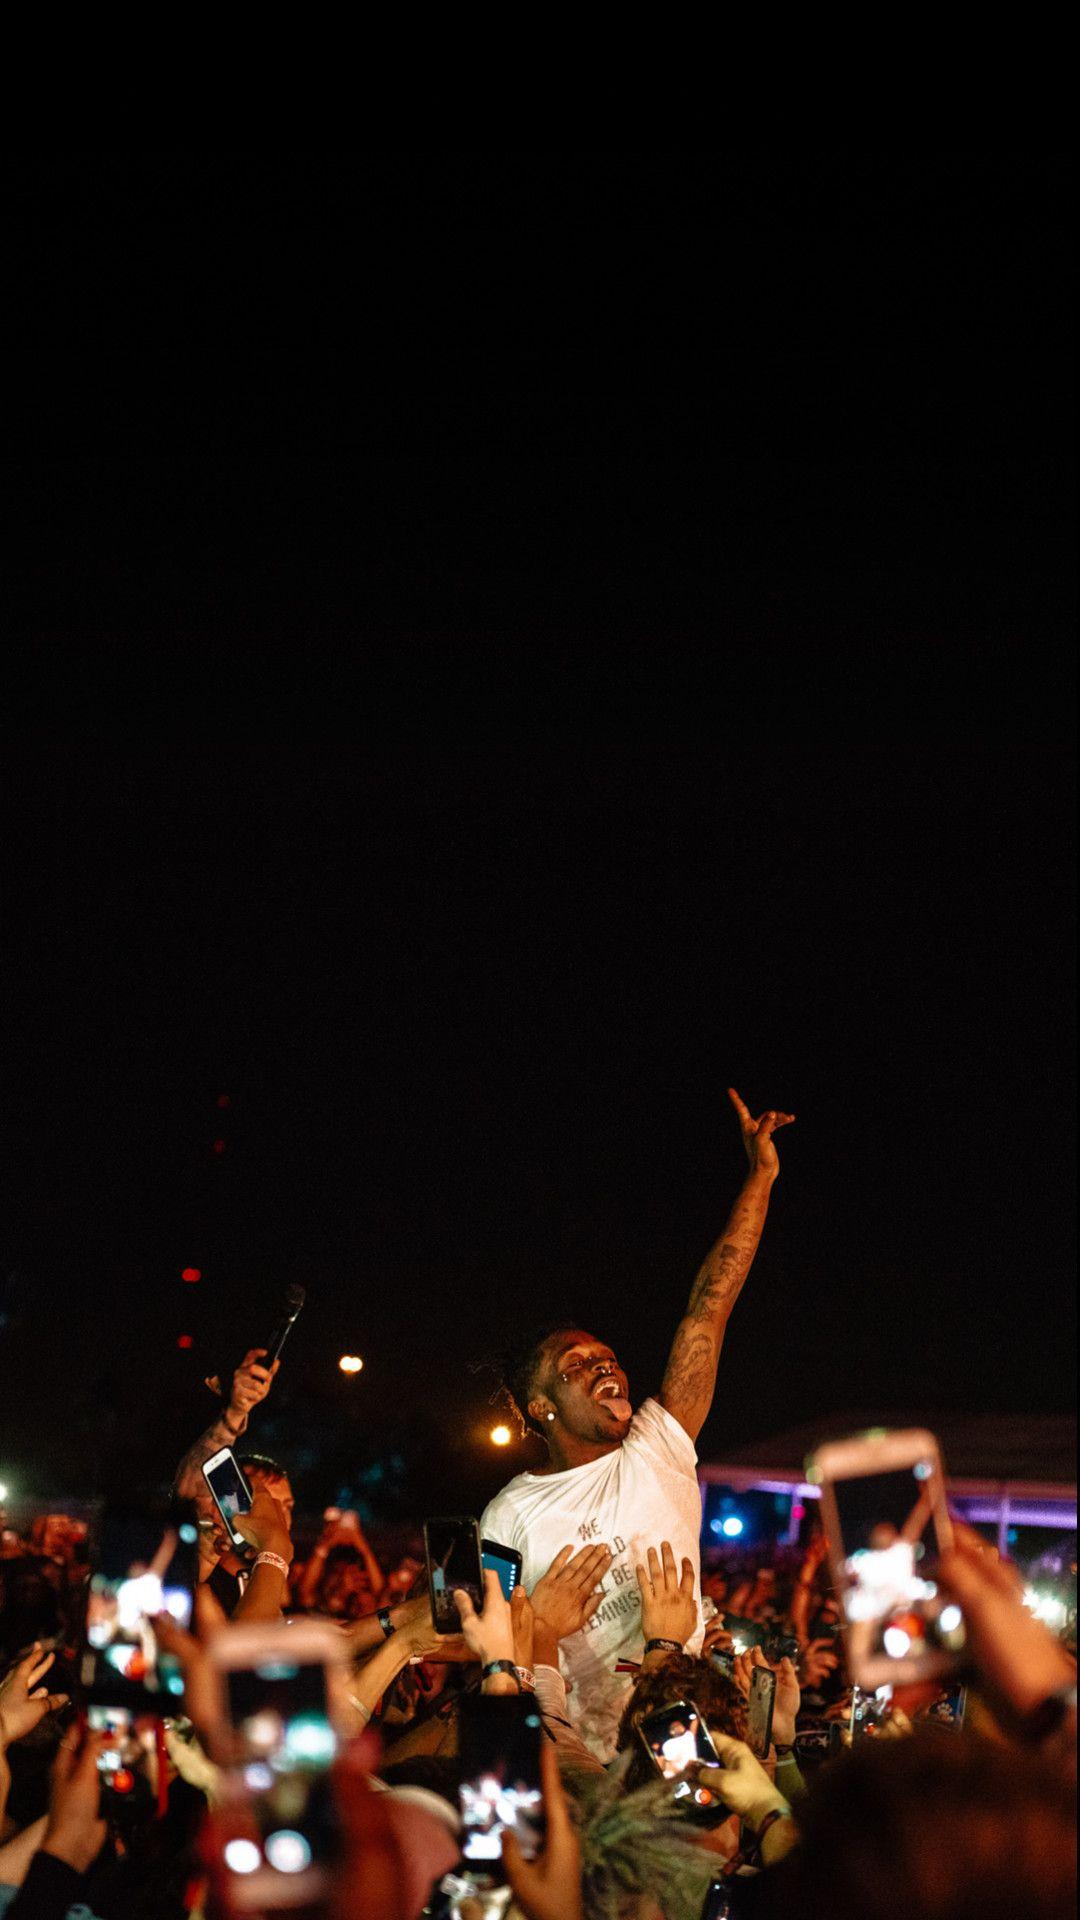 Lil Uzi Vert Eternal Atake Wallpapers Wallpaper Cave The best gifs are on giphy. lil uzi vert eternal atake wallpapers